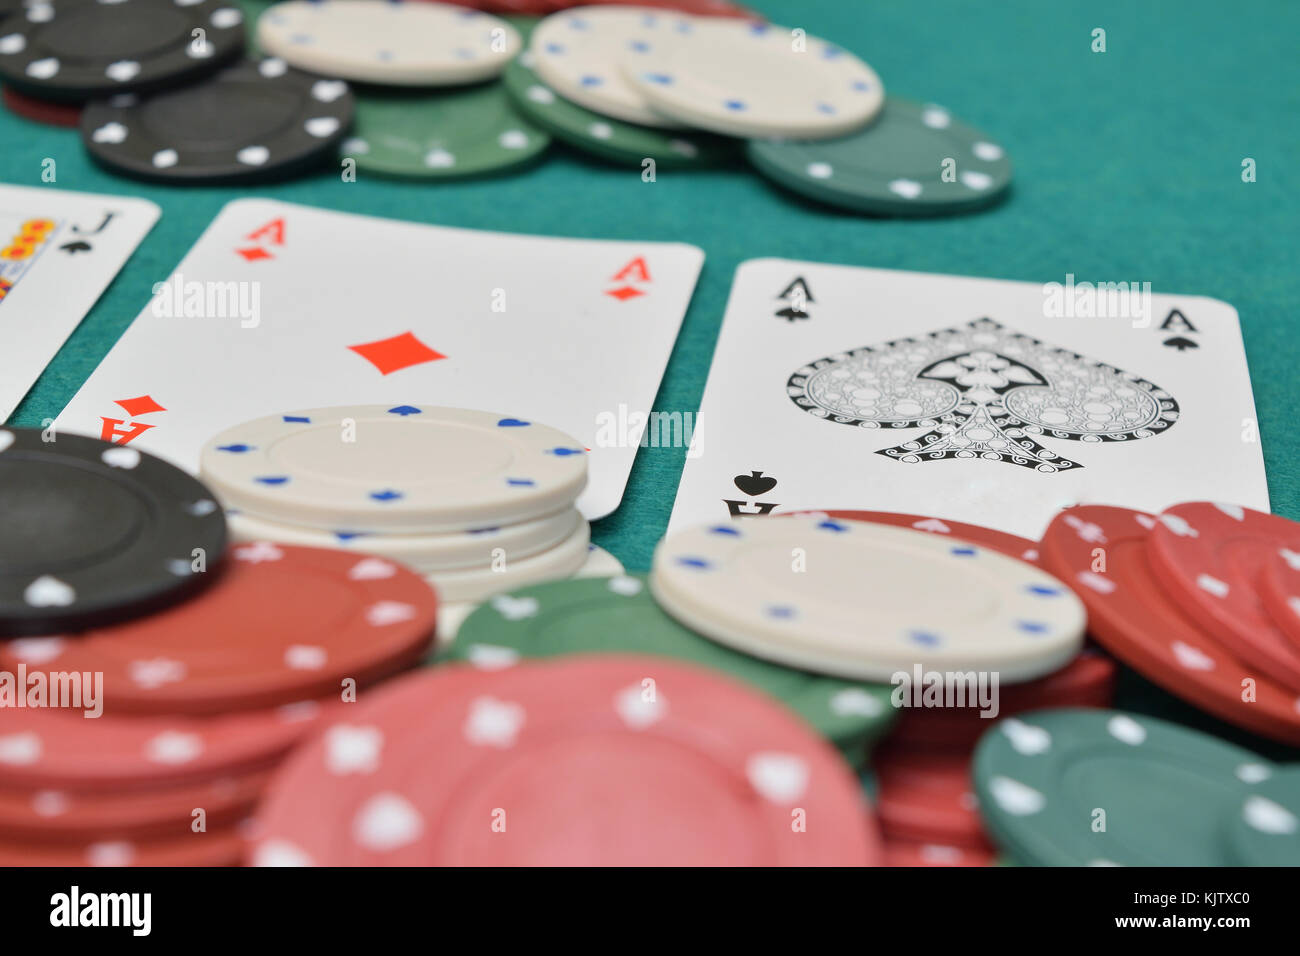 chips and cards on a gambling table with chips - Stock Image